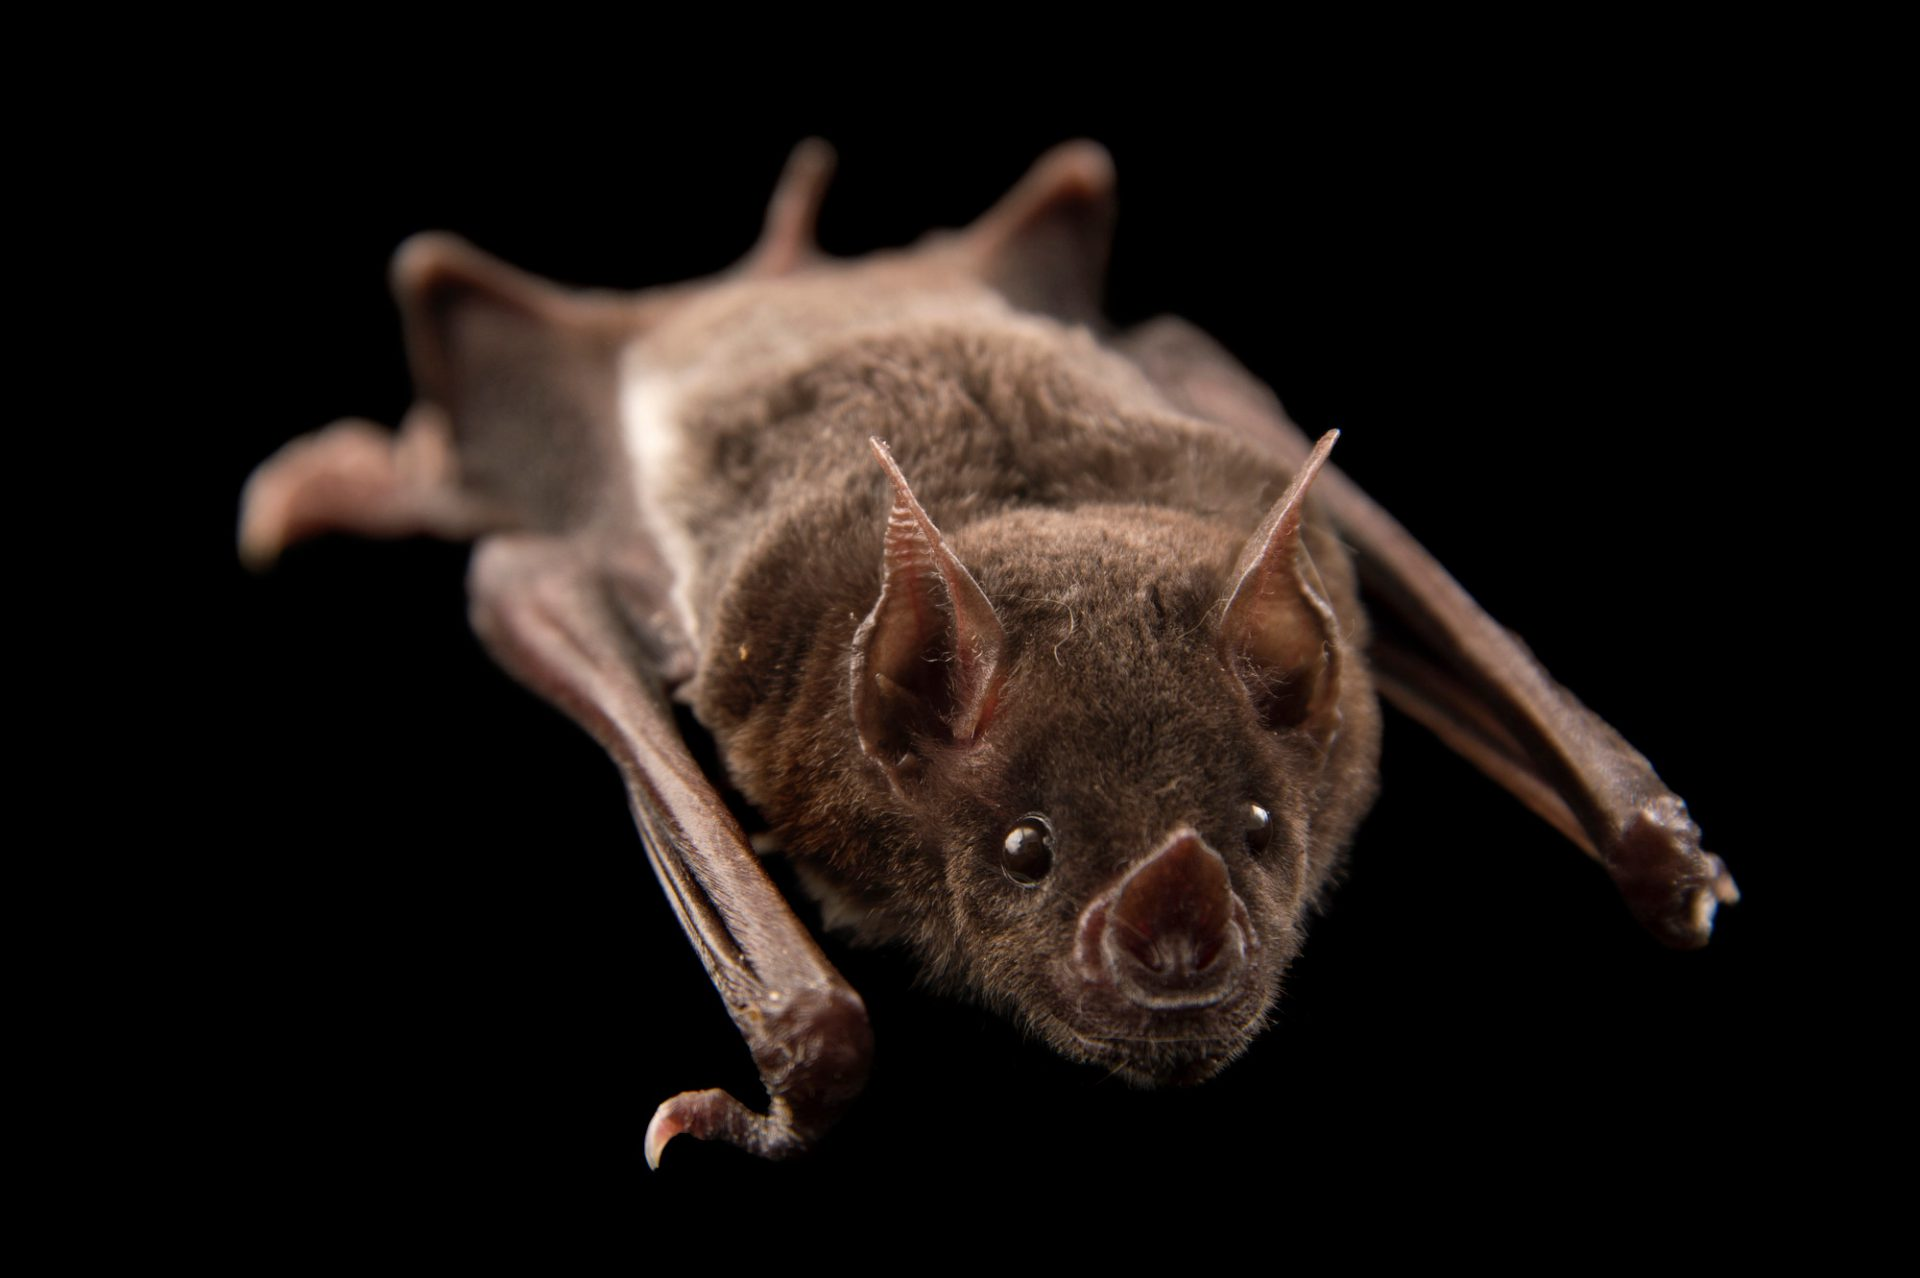 Photo: Pale spear nosed bat (Phyllostomus discolor) at the Plzen Zoo in the Czech Republic.